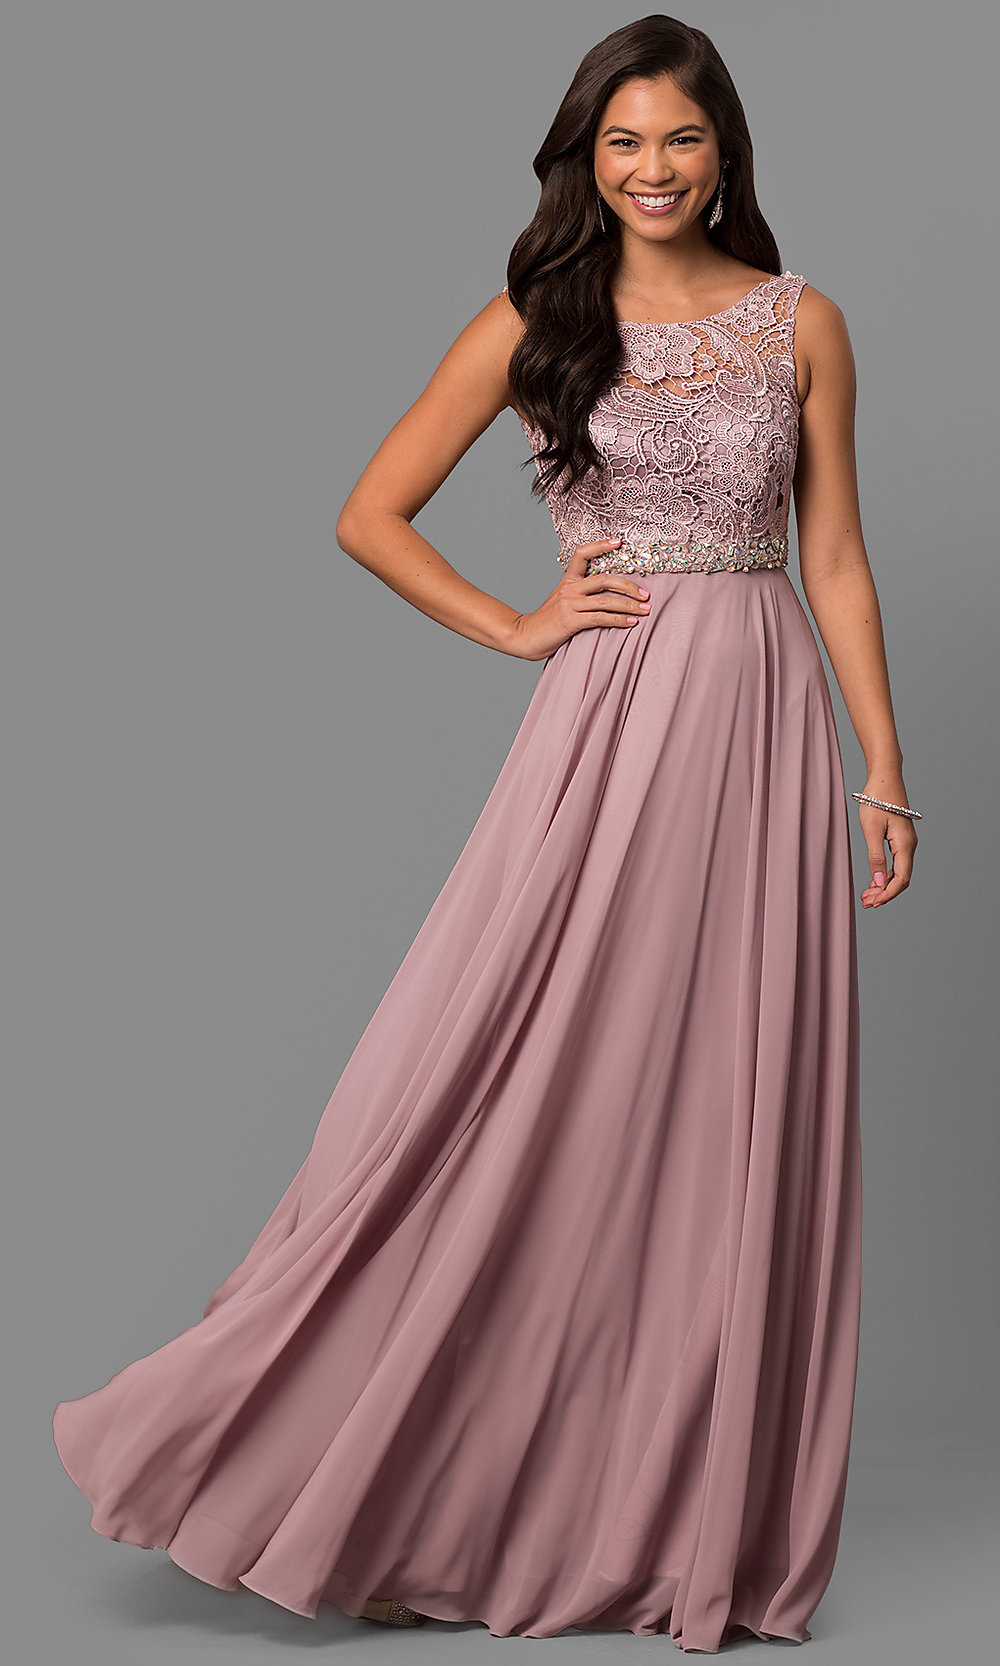 Find great deals on eBay for long chiffon dress. Shop with confidence.